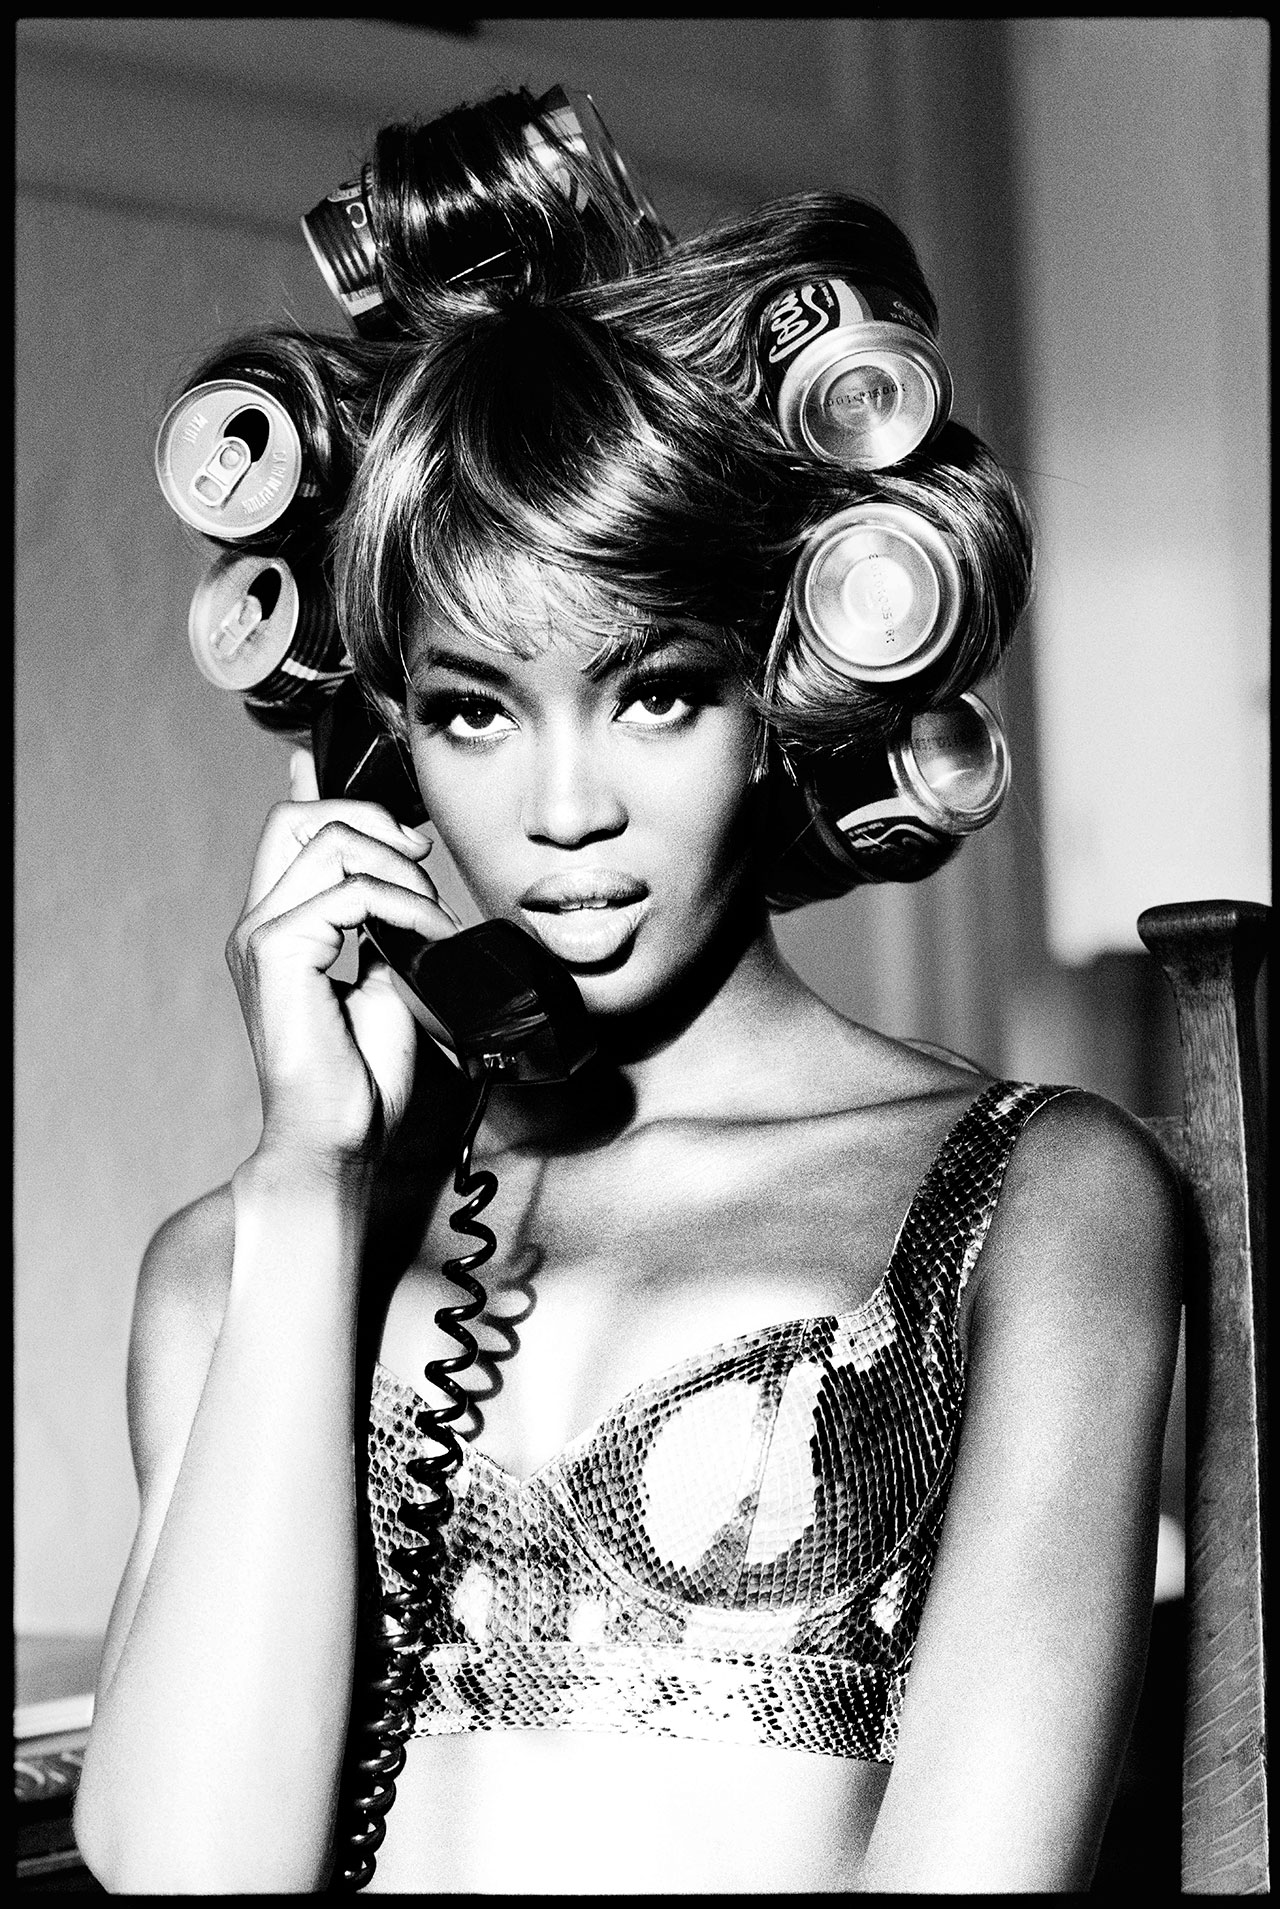 Naomi Campbell wearing Azzedine Alaïa Tati Collection Spring Summer 1991. Photo by Ellen von Unwerth.